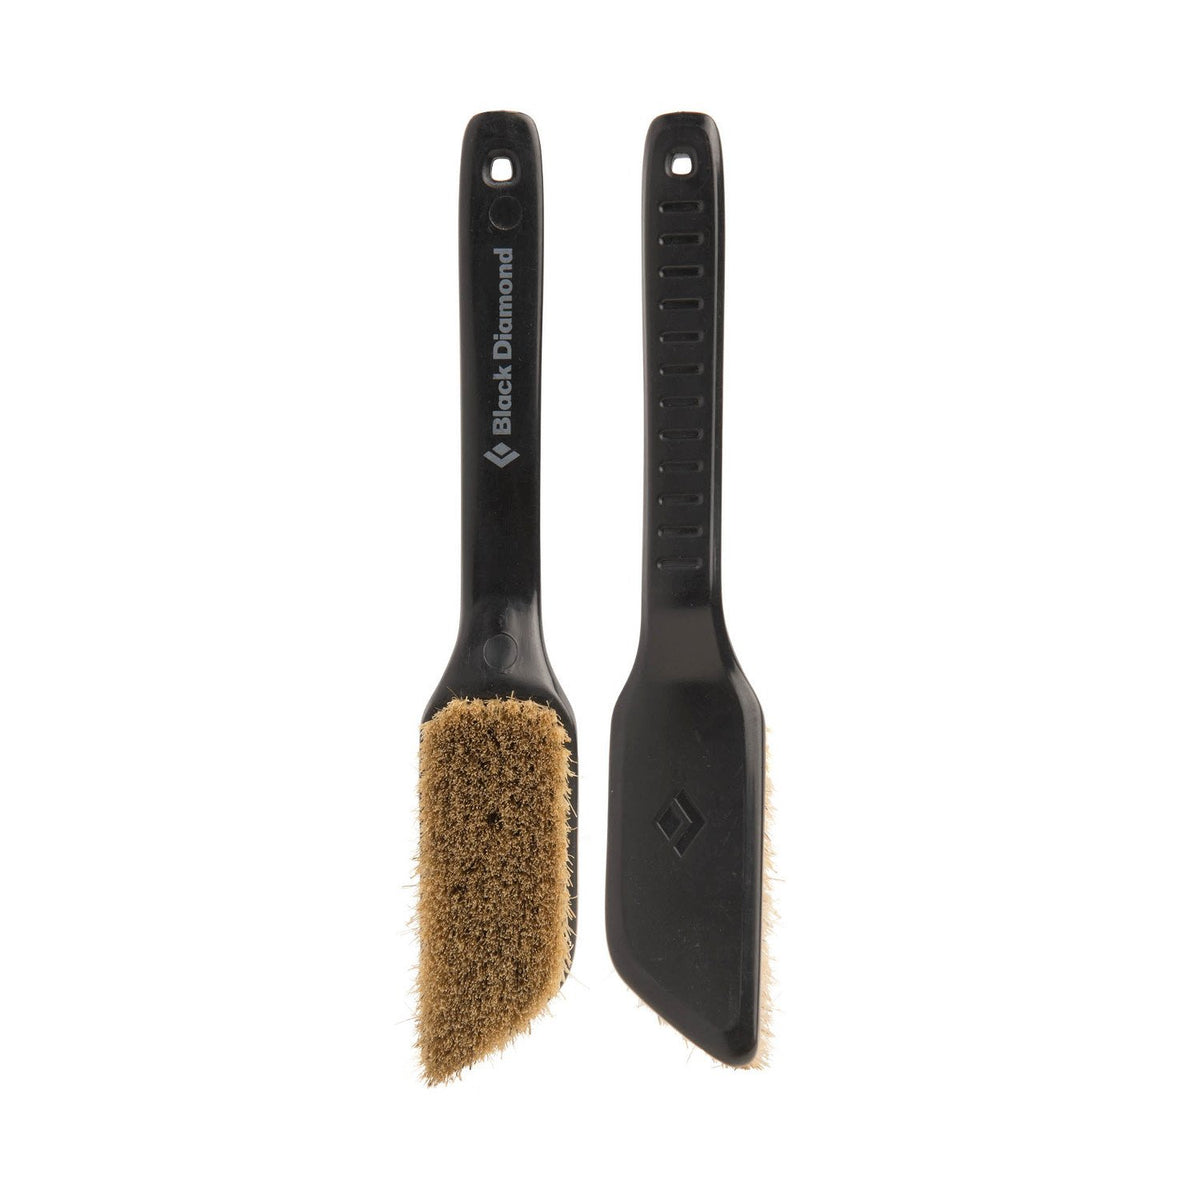 Pair of black Black Diamond Boars Hair Brushes - Medium, 1 shown facing and 1 shown in the reverse